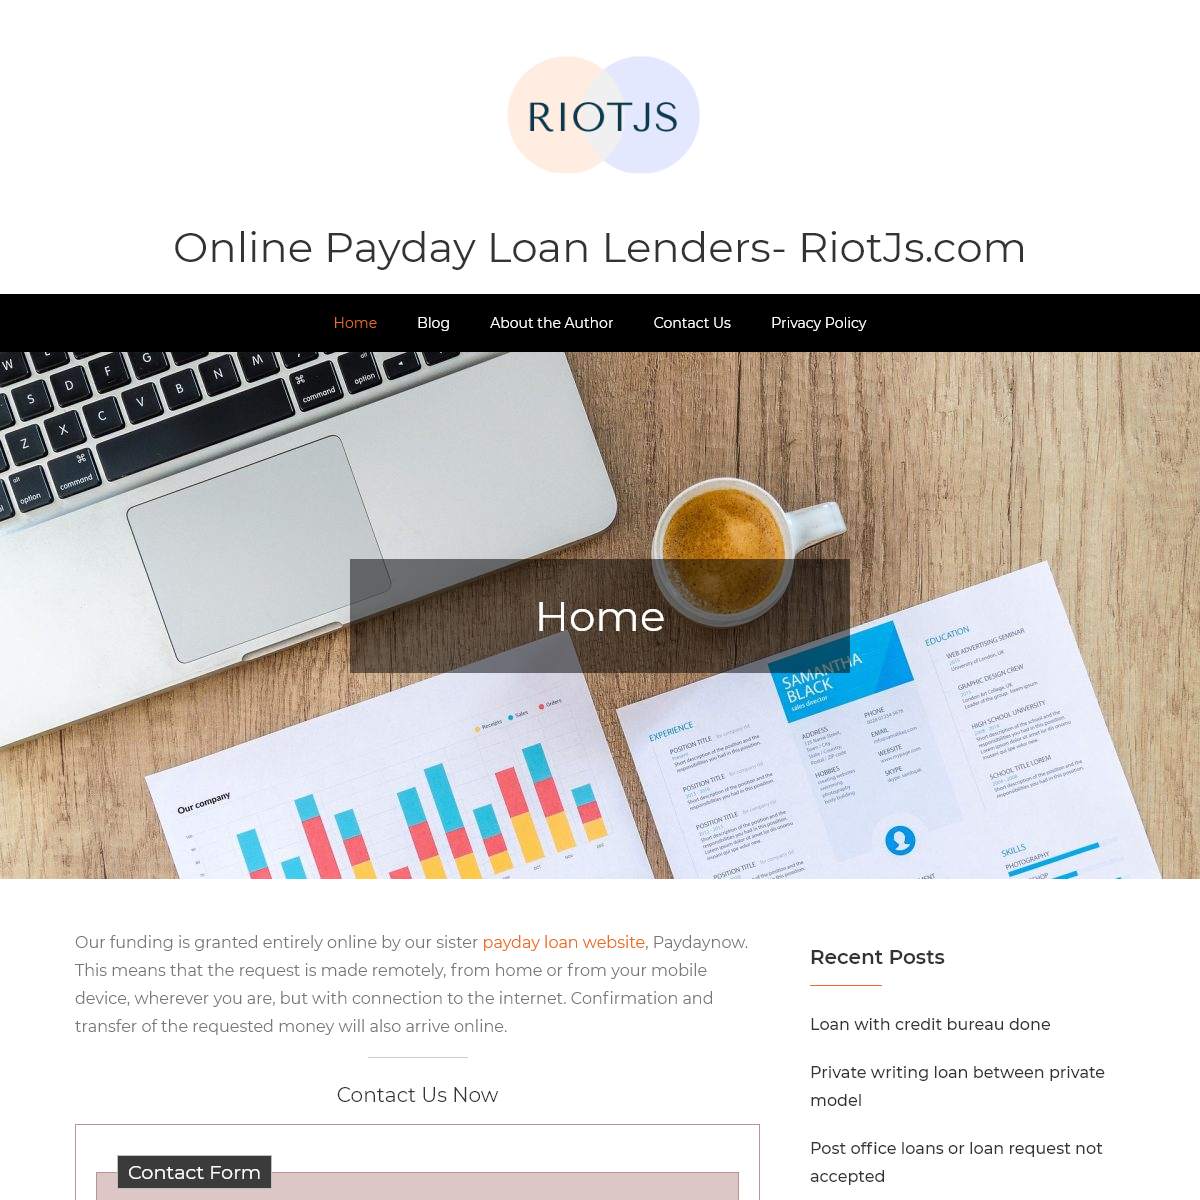 Online Payday Loan Lenders- RiotJs.com